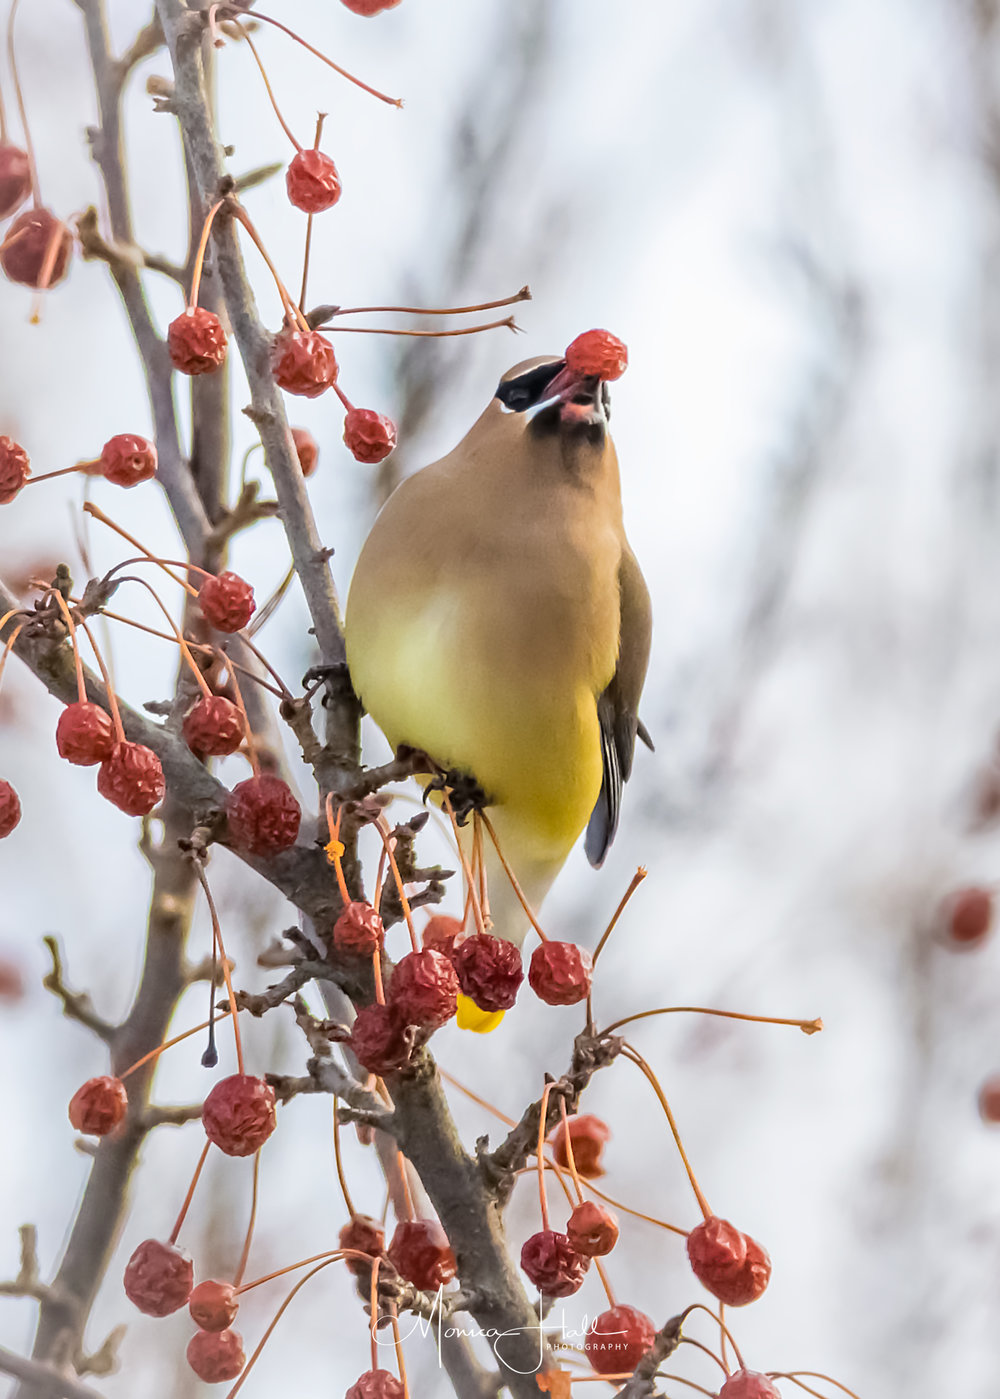 Cedar waxwing feasts on berries in winter. Photo by Monica Hall